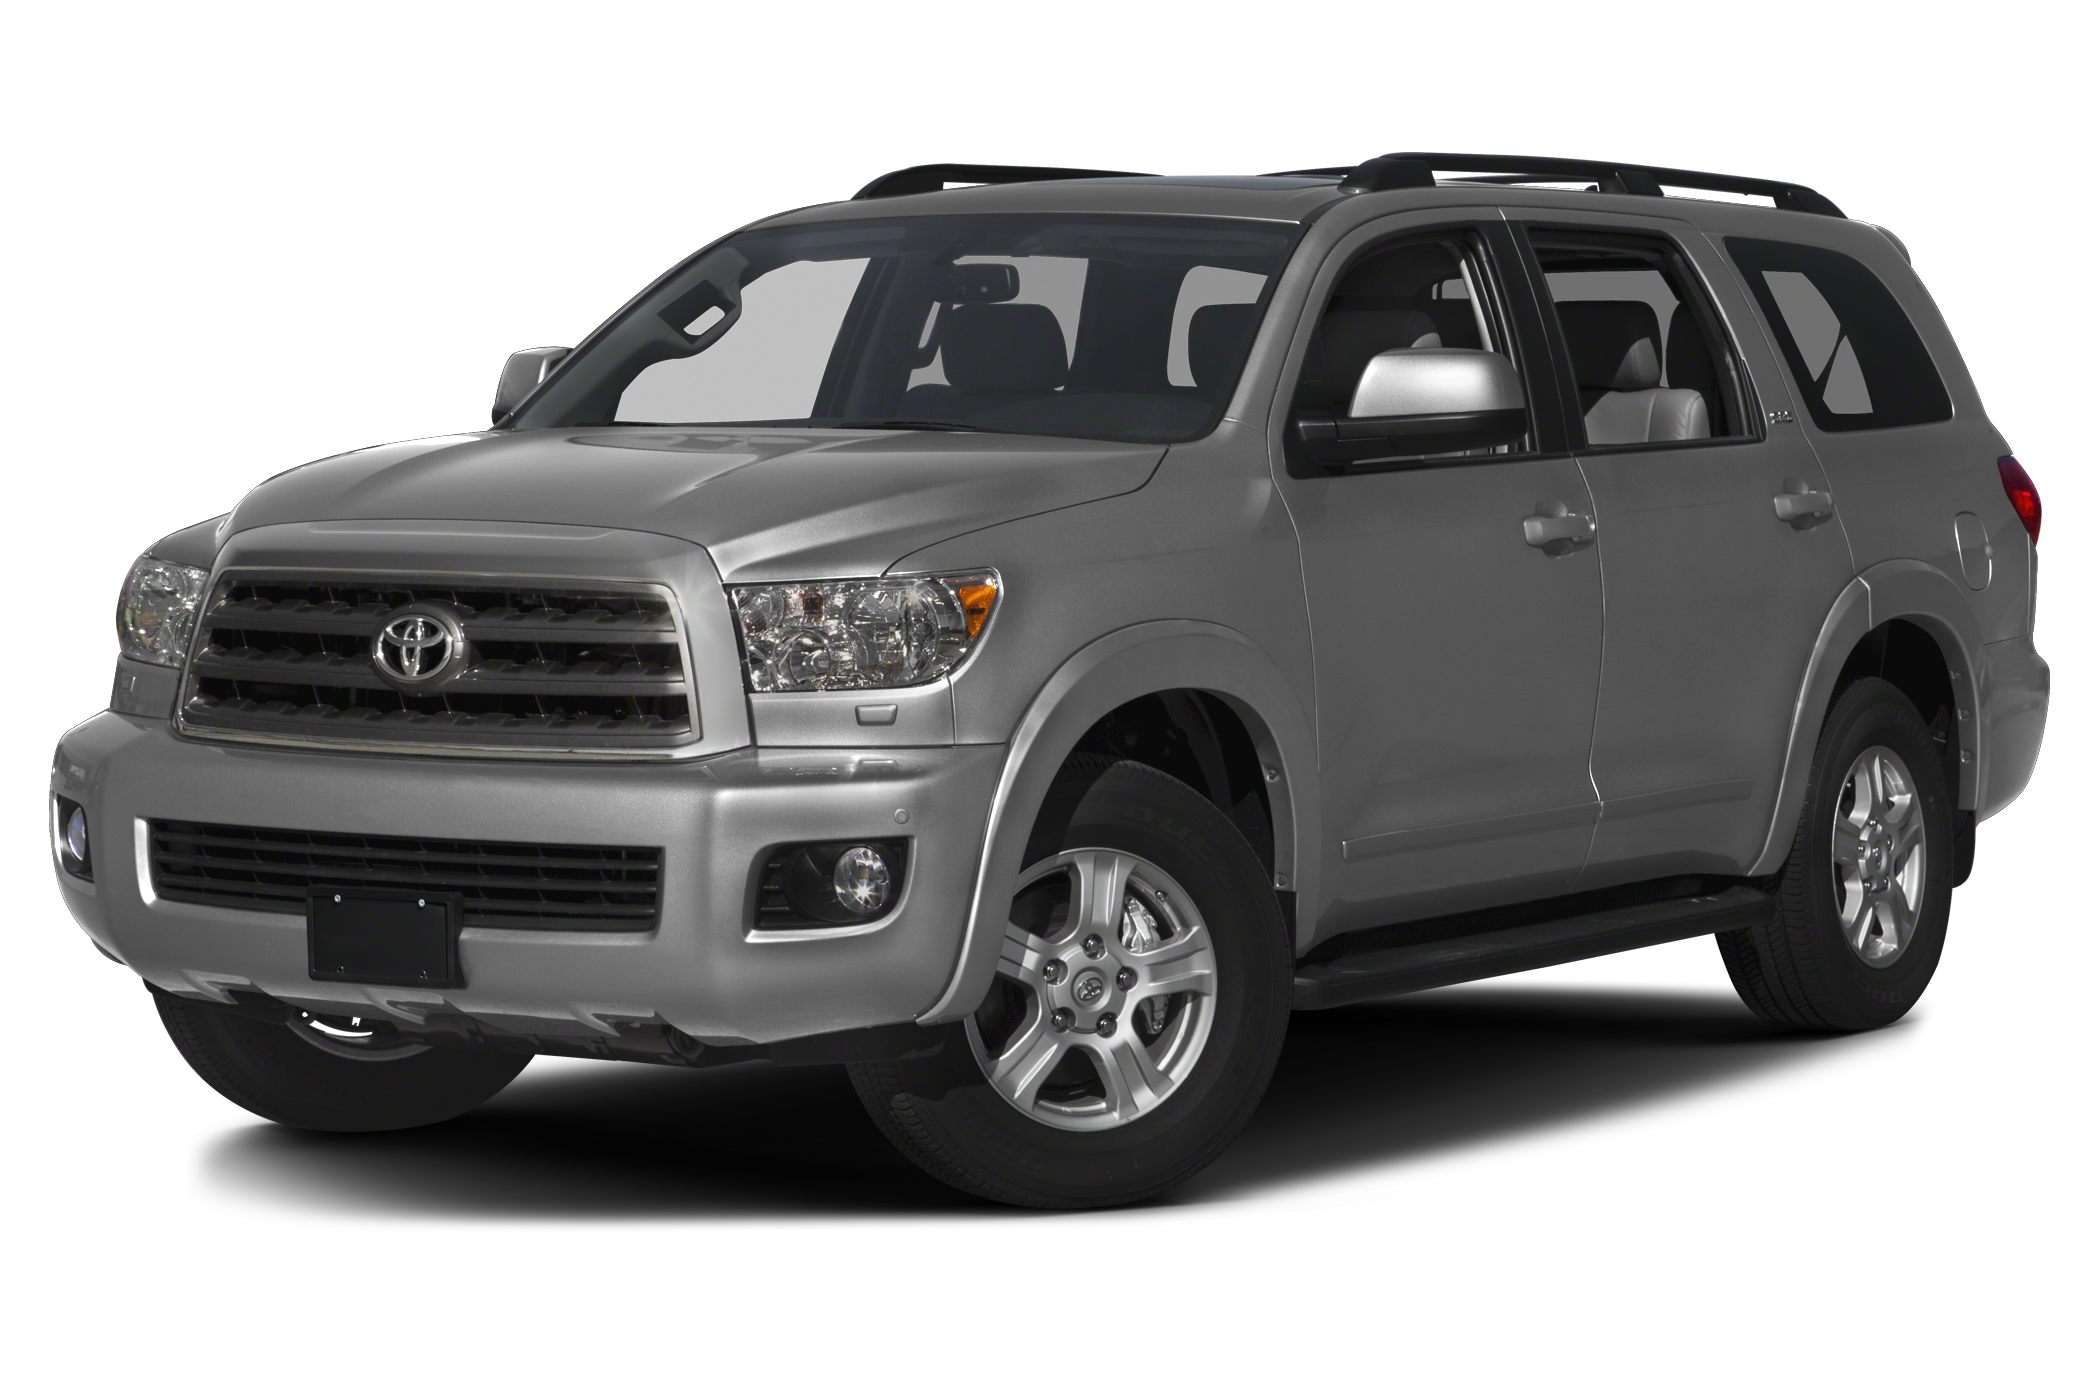 2018 toyota sequoia trd sport 2017 chicago auto show photo gallery autoblog. Black Bedroom Furniture Sets. Home Design Ideas